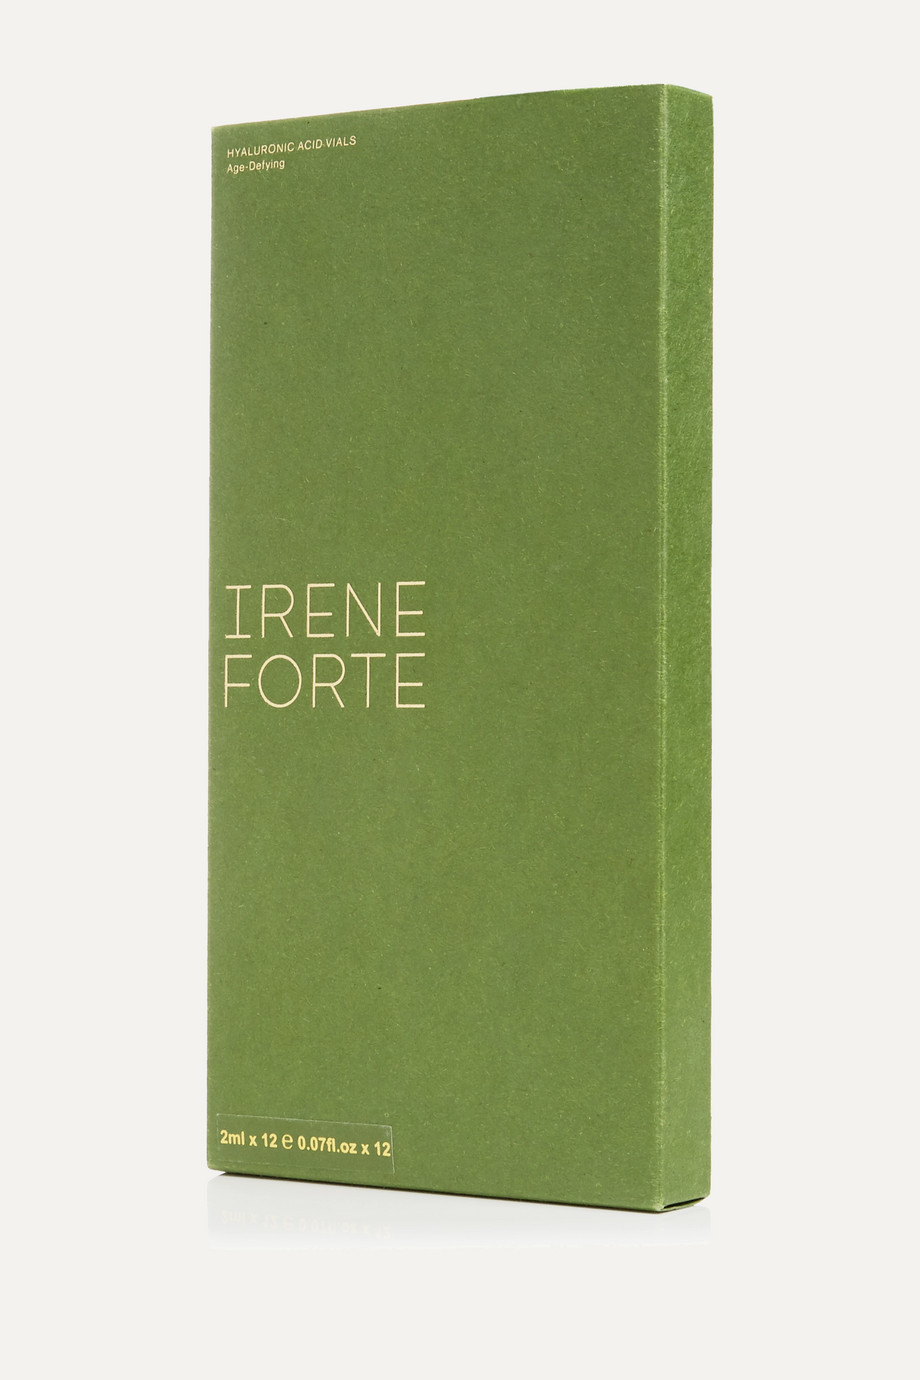 Irene Forte + NET SUSTAIN Hyaluronic Acid Vials - Age-Defying, 12 x 2ml